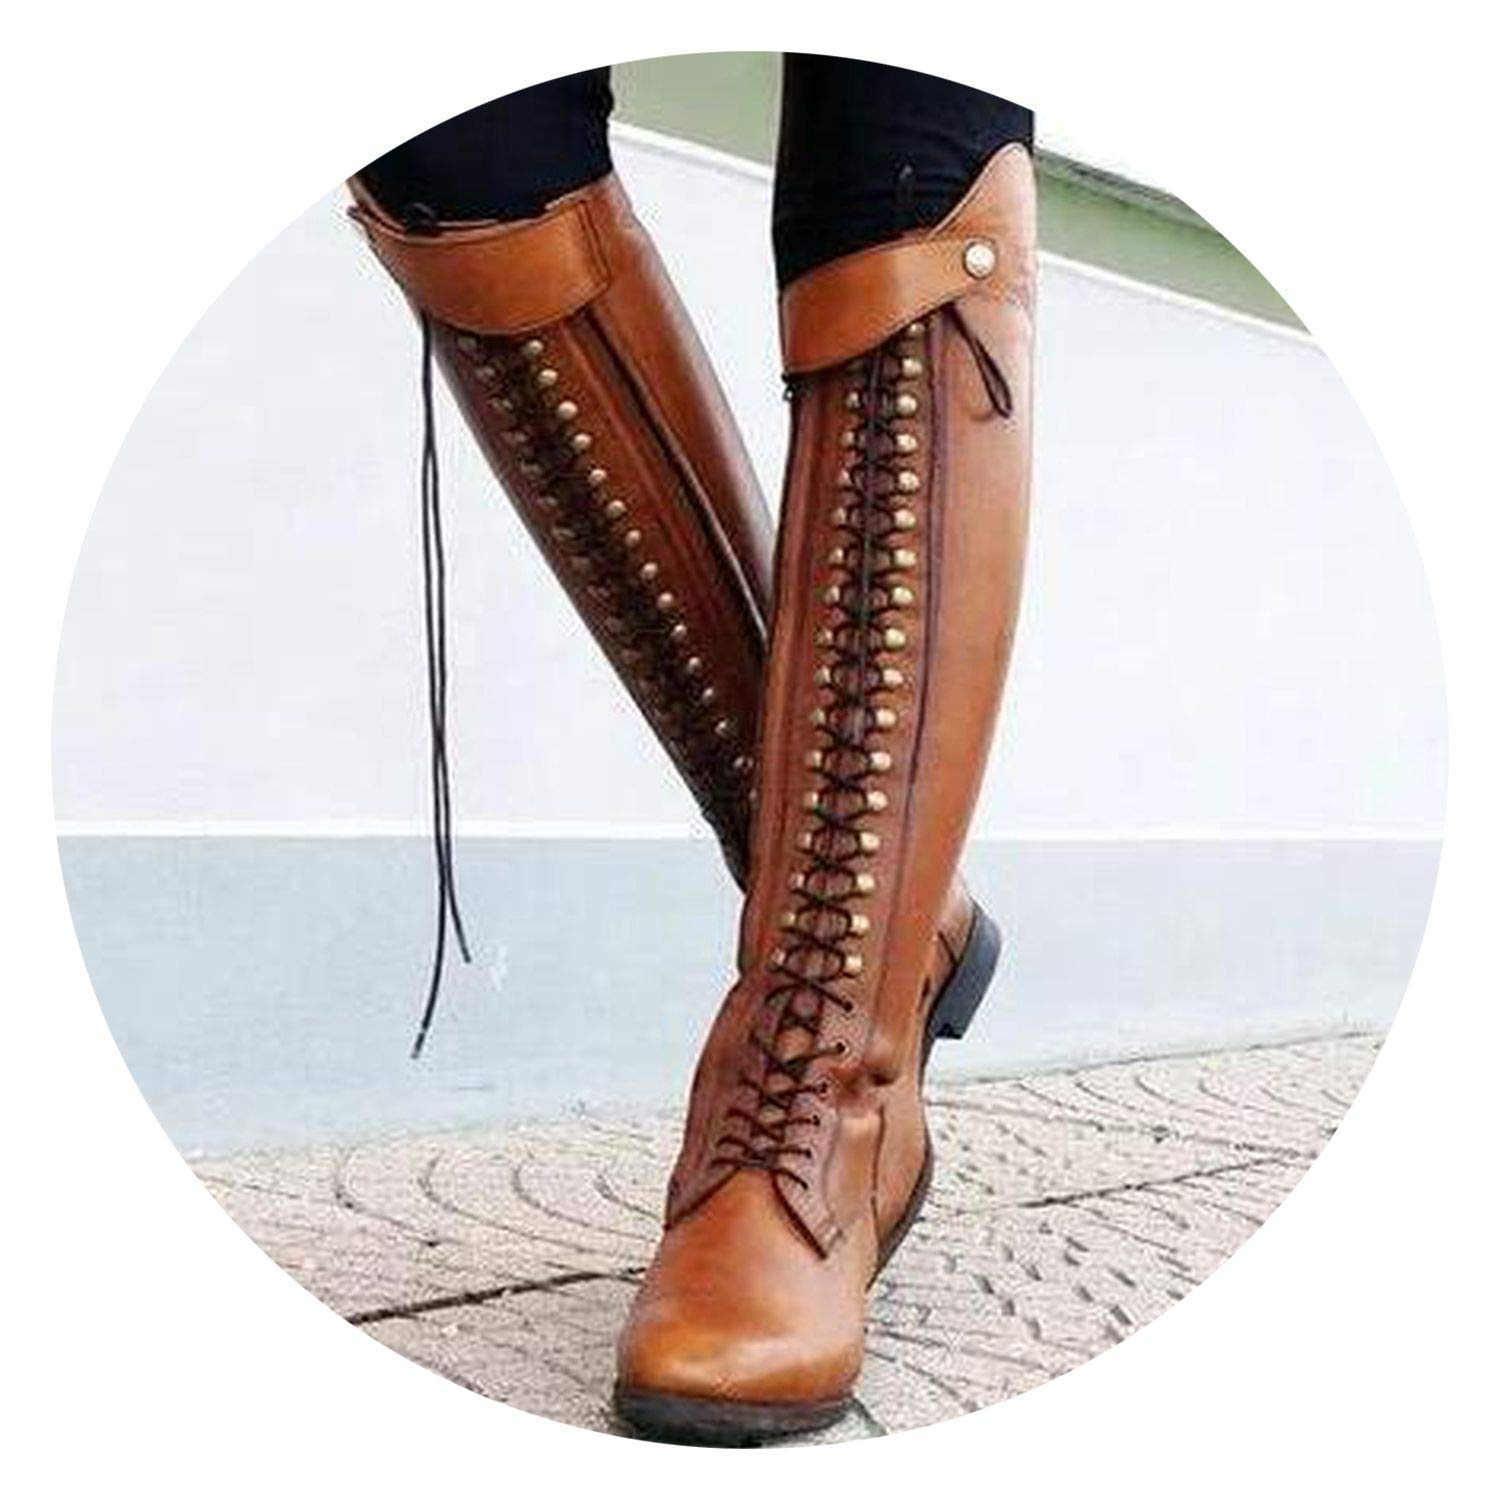 SmarketL High end Trendy-Nicer Knee high Motorcycle Boots lace up Martin Boots Woman giator Sapato Booties